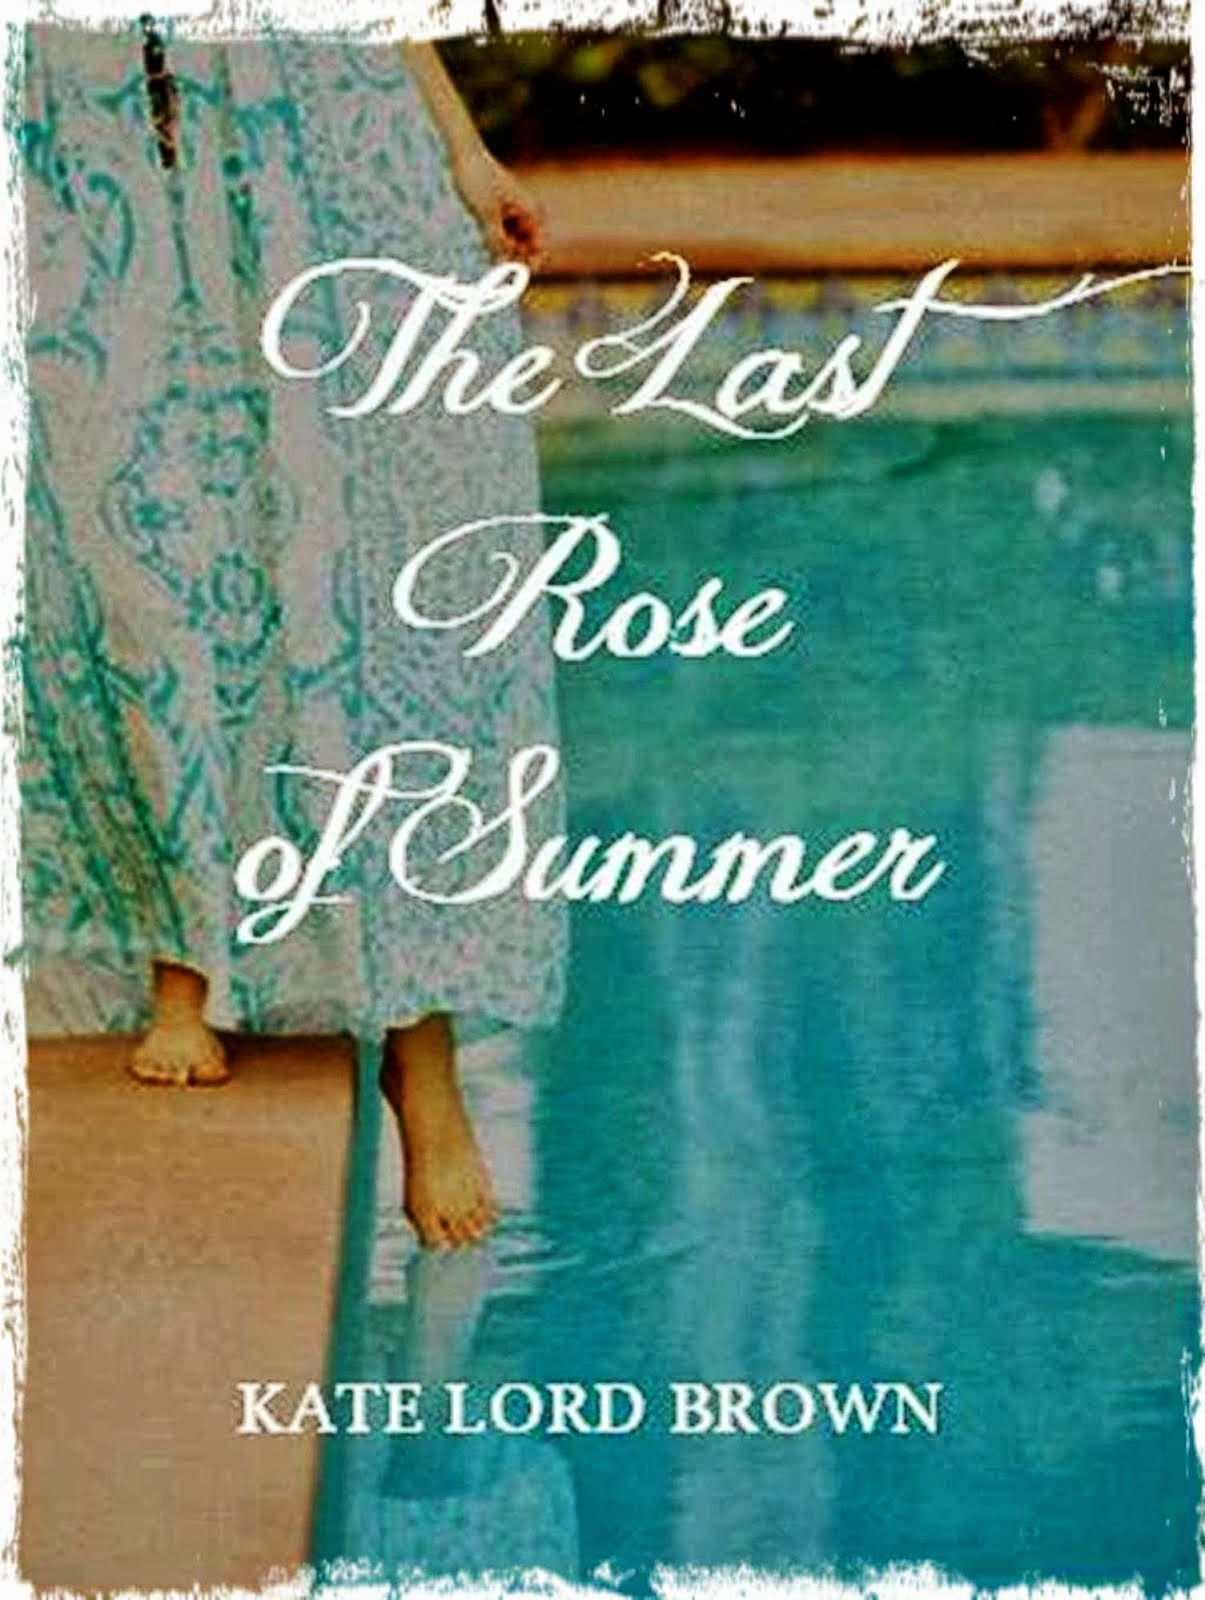 The Last Rose of Summer - a Short Story